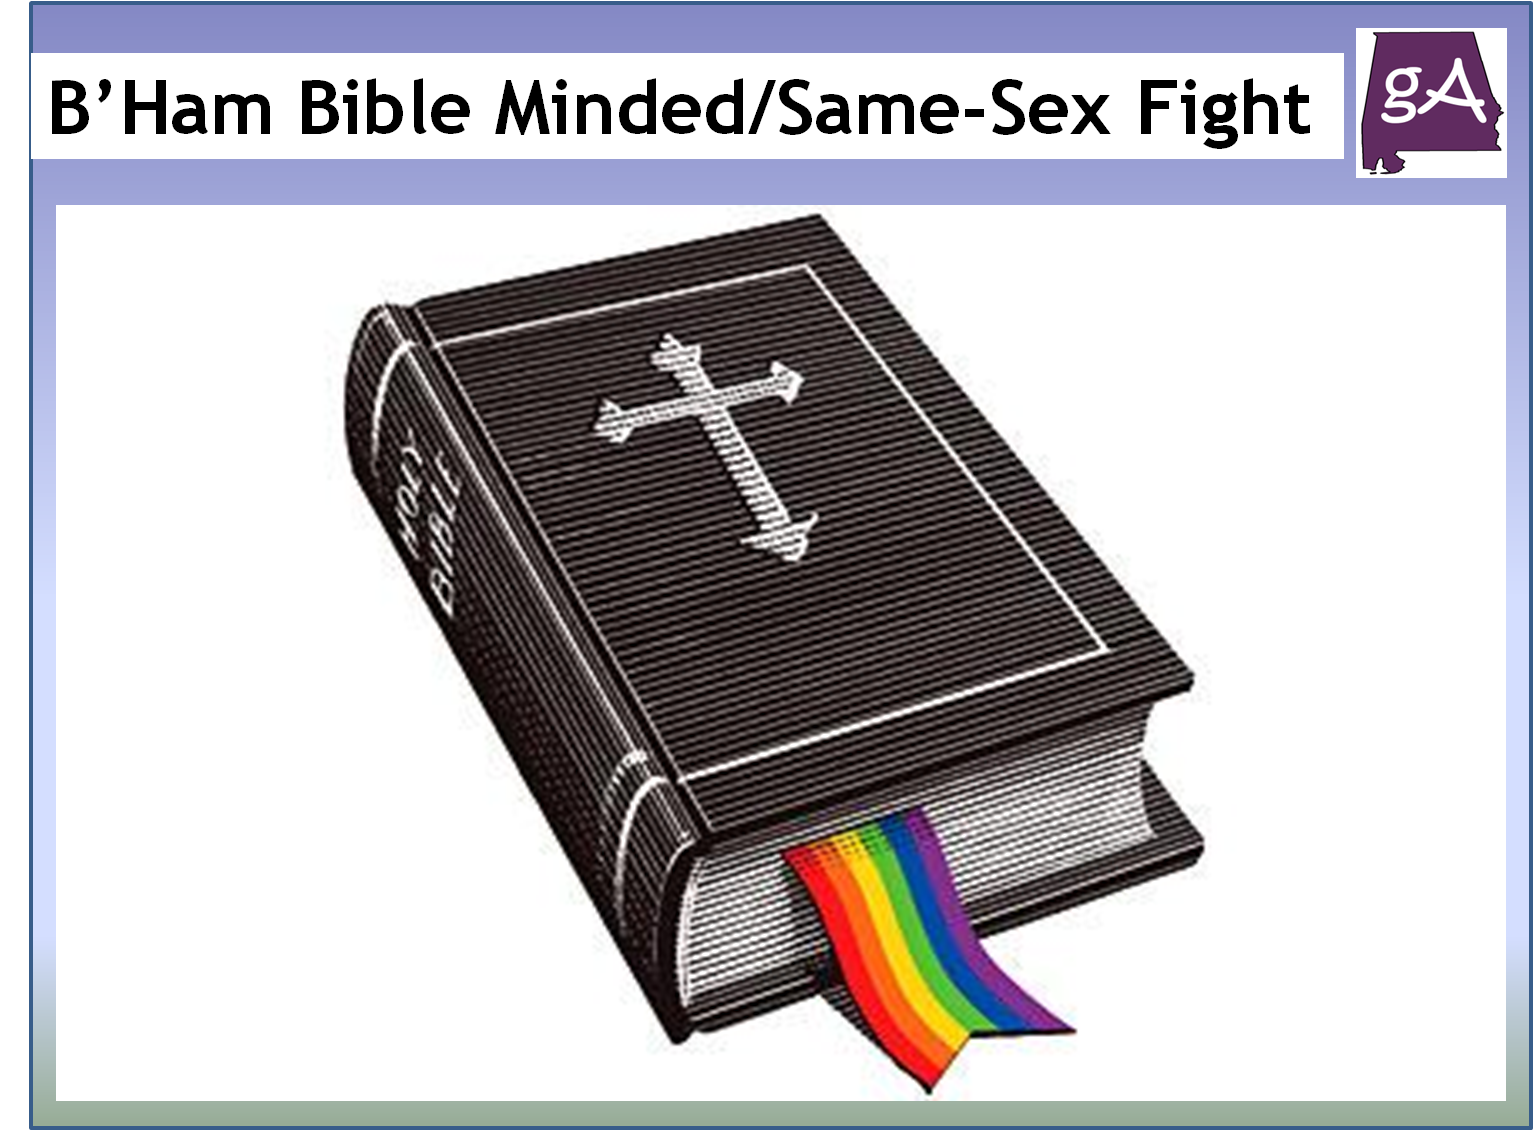 bible belt and same sex marriage in New Orleans